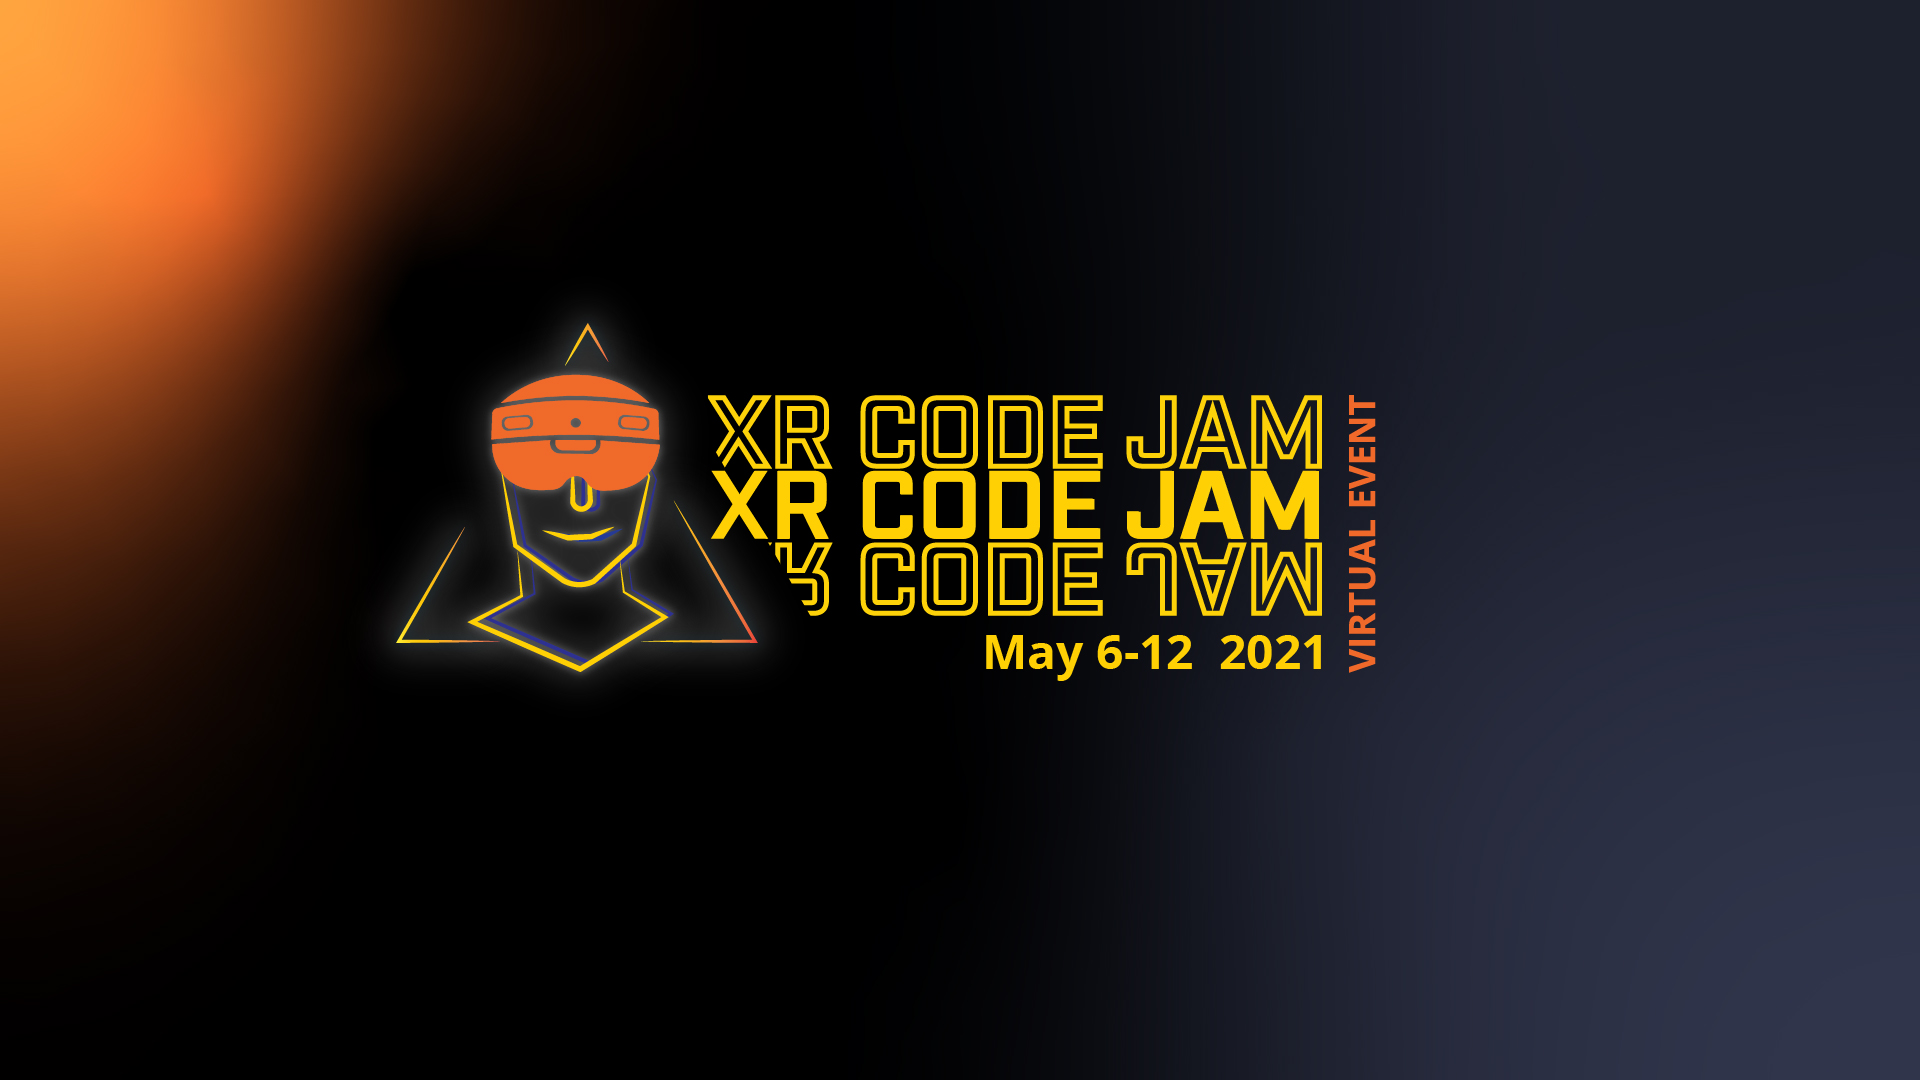 Holo-Light Announces First XR Code Jam